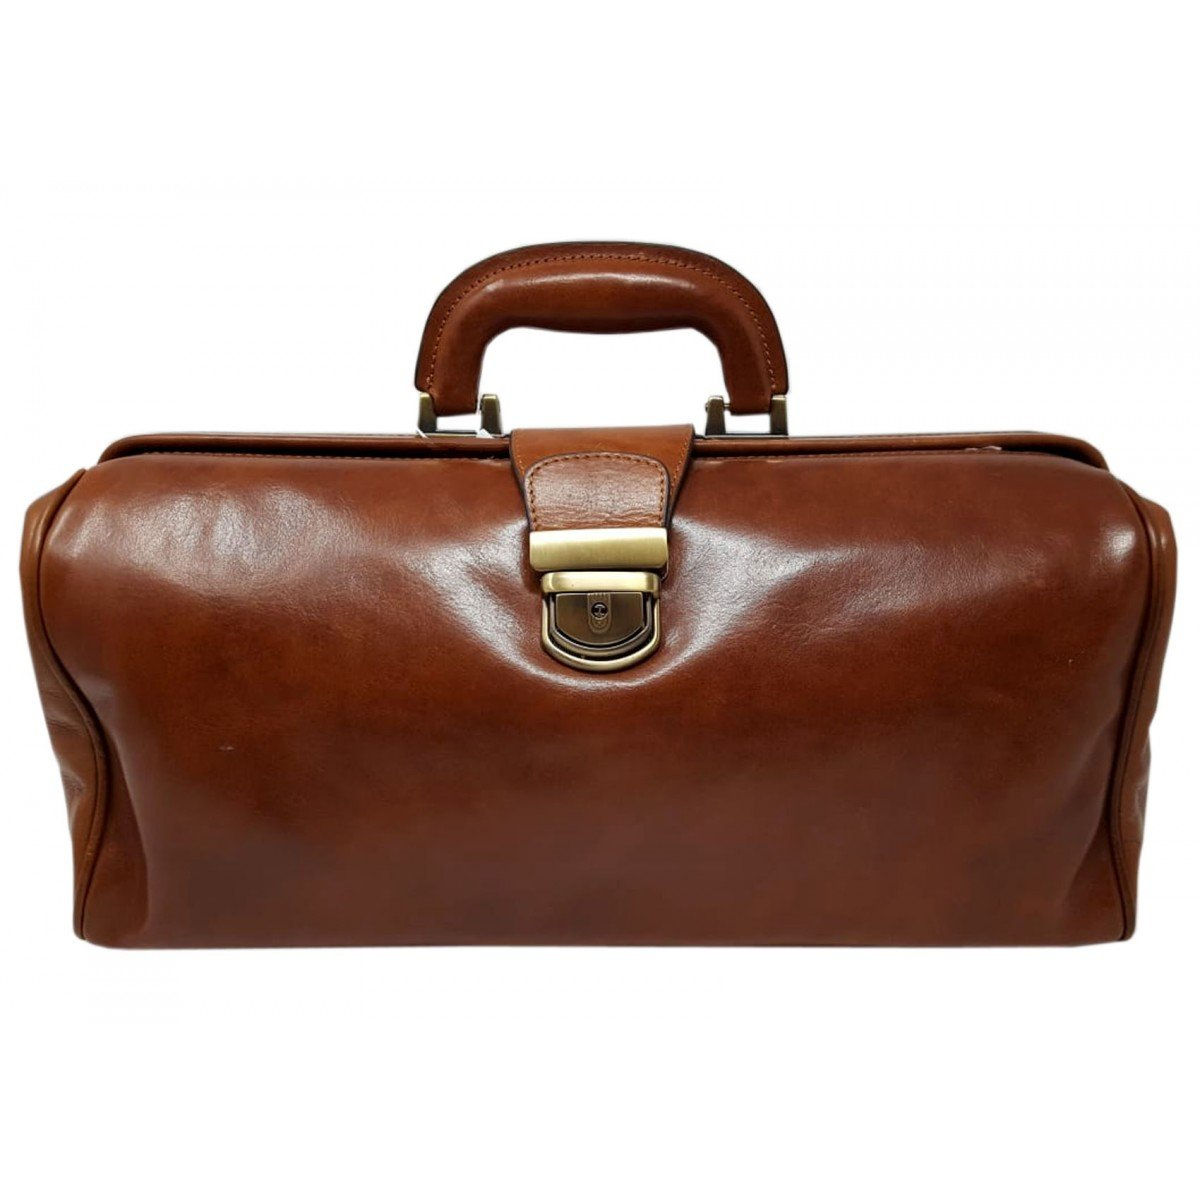 Made In Italy Genuine Leather Doctor's Bag Color Brown - Business Bag B014T6GYR8